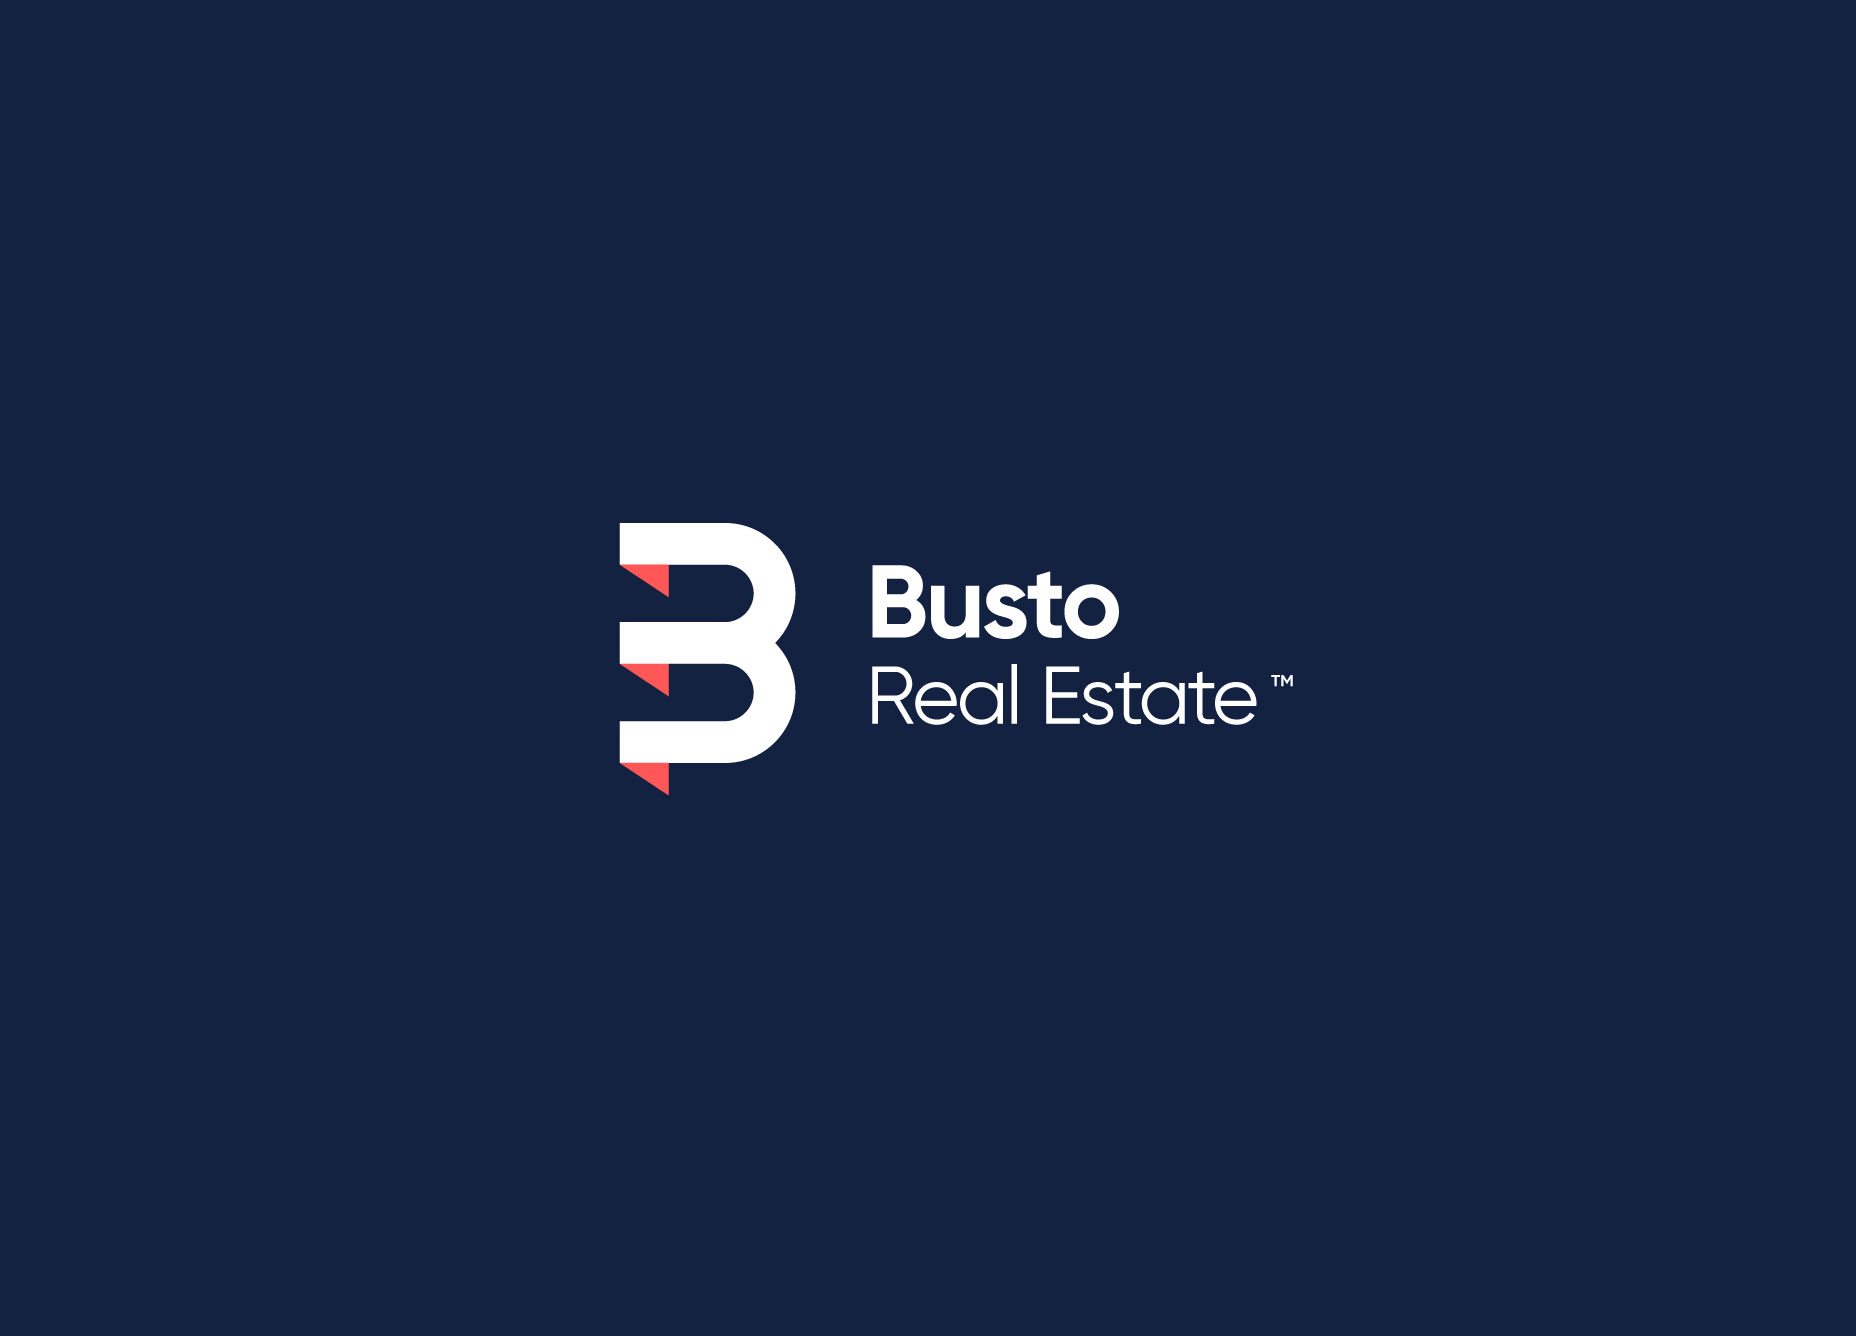 Busto Real Estate